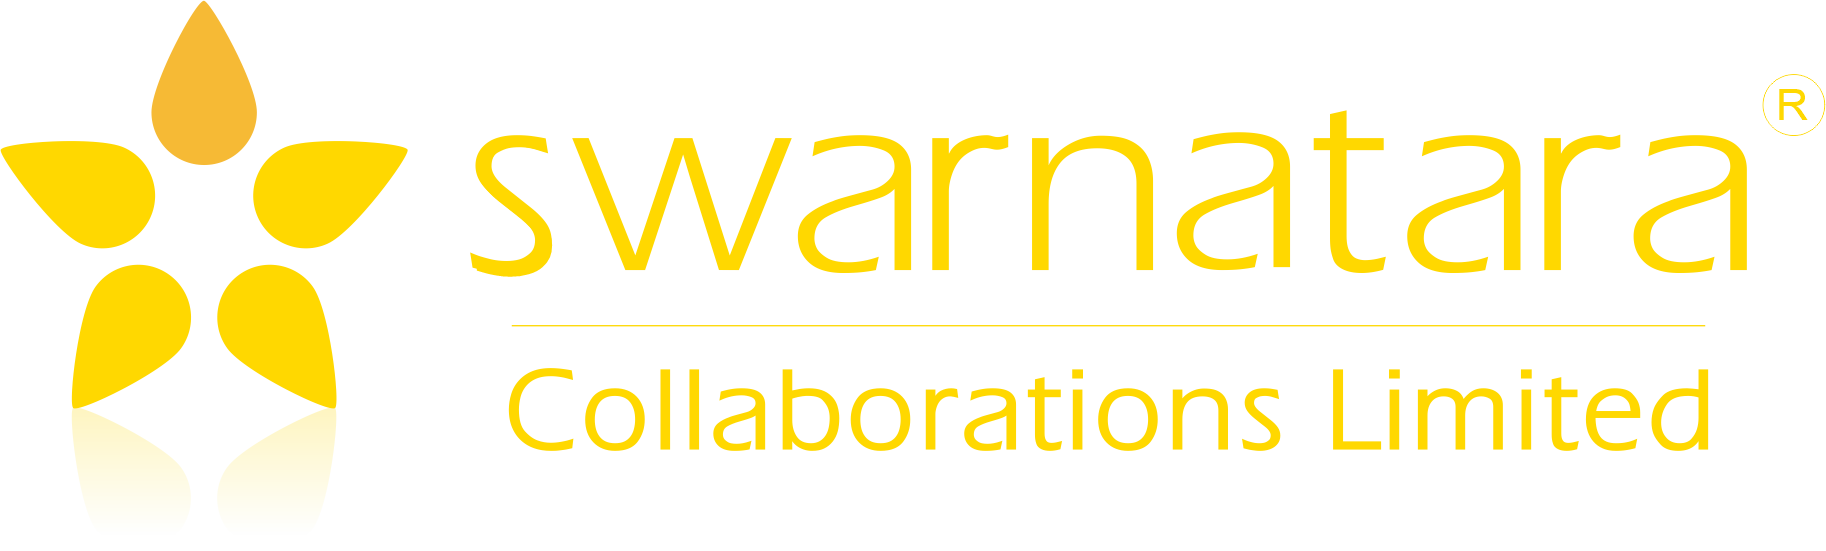 Swarnatara Collaborations